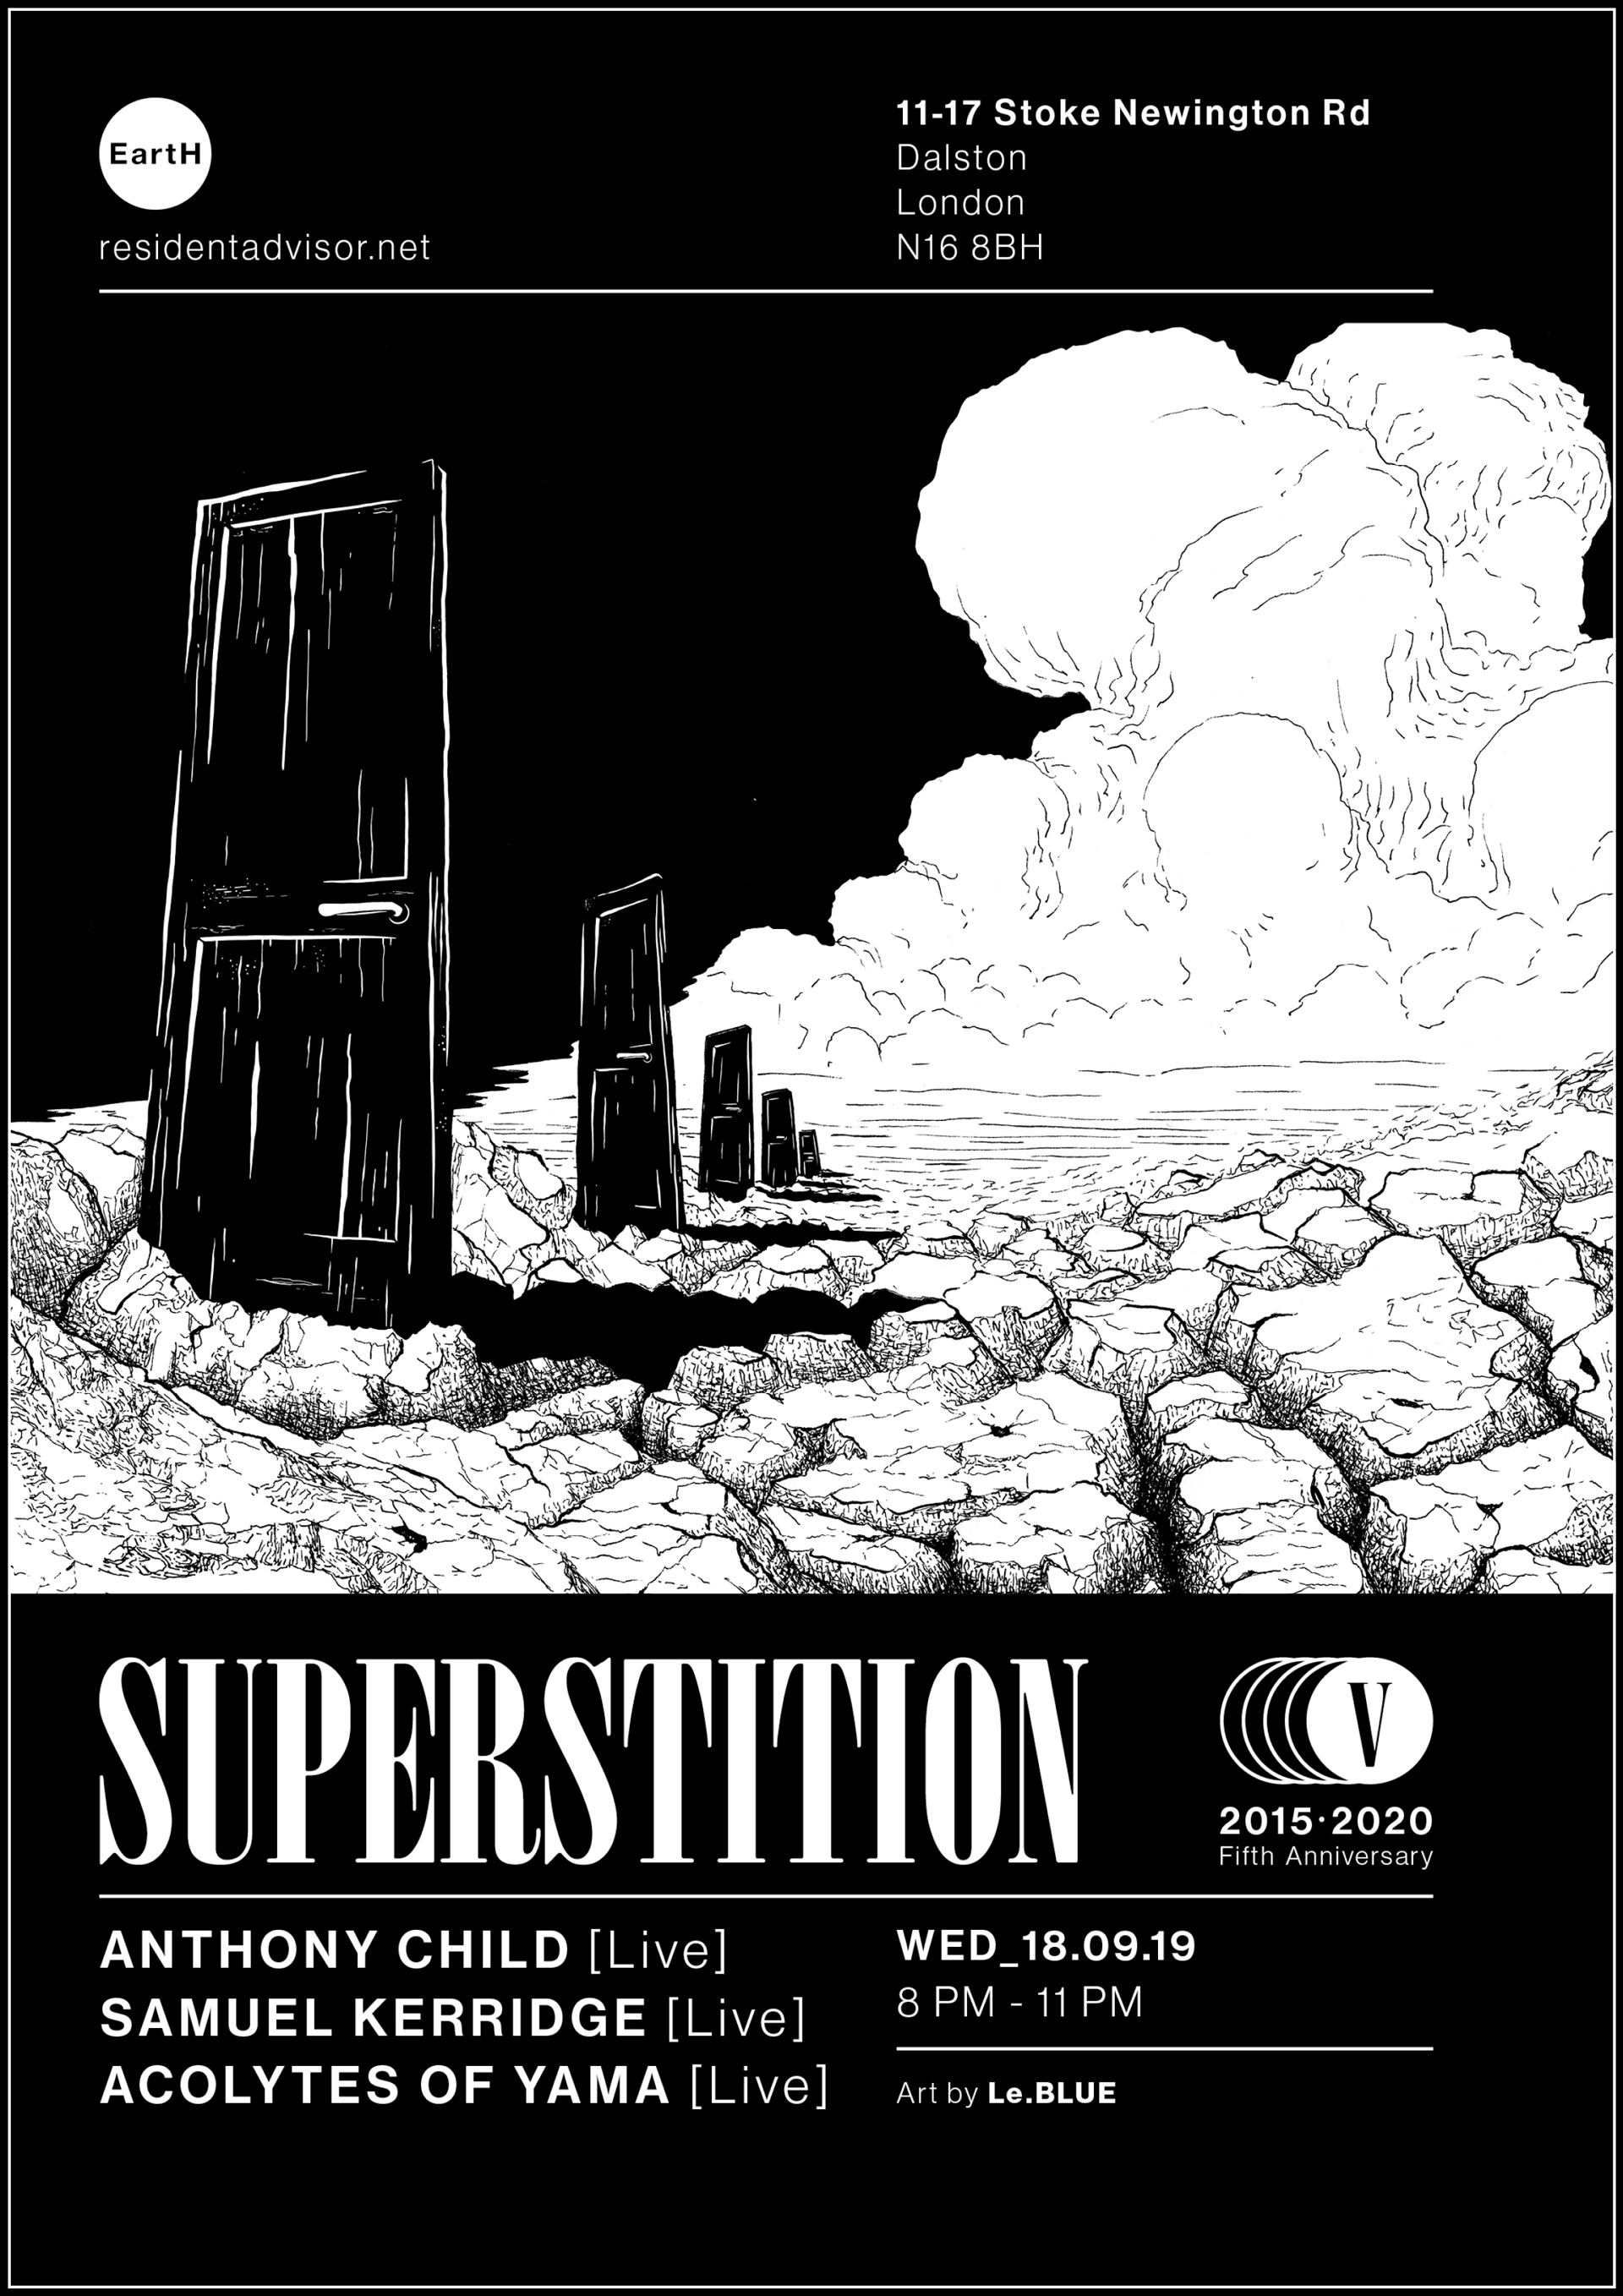 superstition_website5.jpg